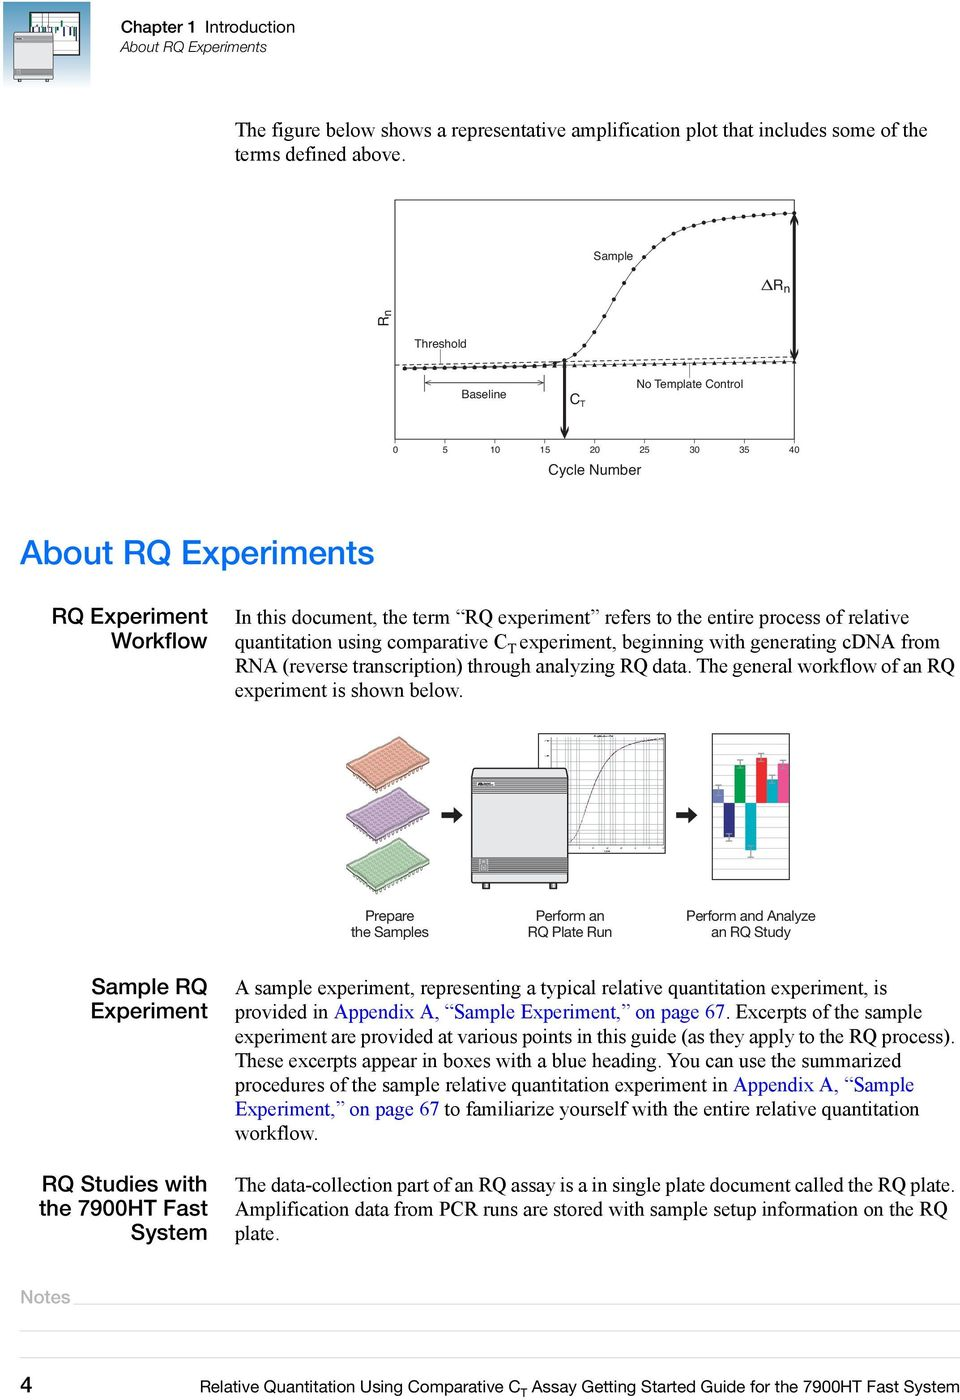 entire process of relative quantitation using comparative C T experiment, beginning with generating cdna from RNA (reverse transcription) through analyzing RQ data.